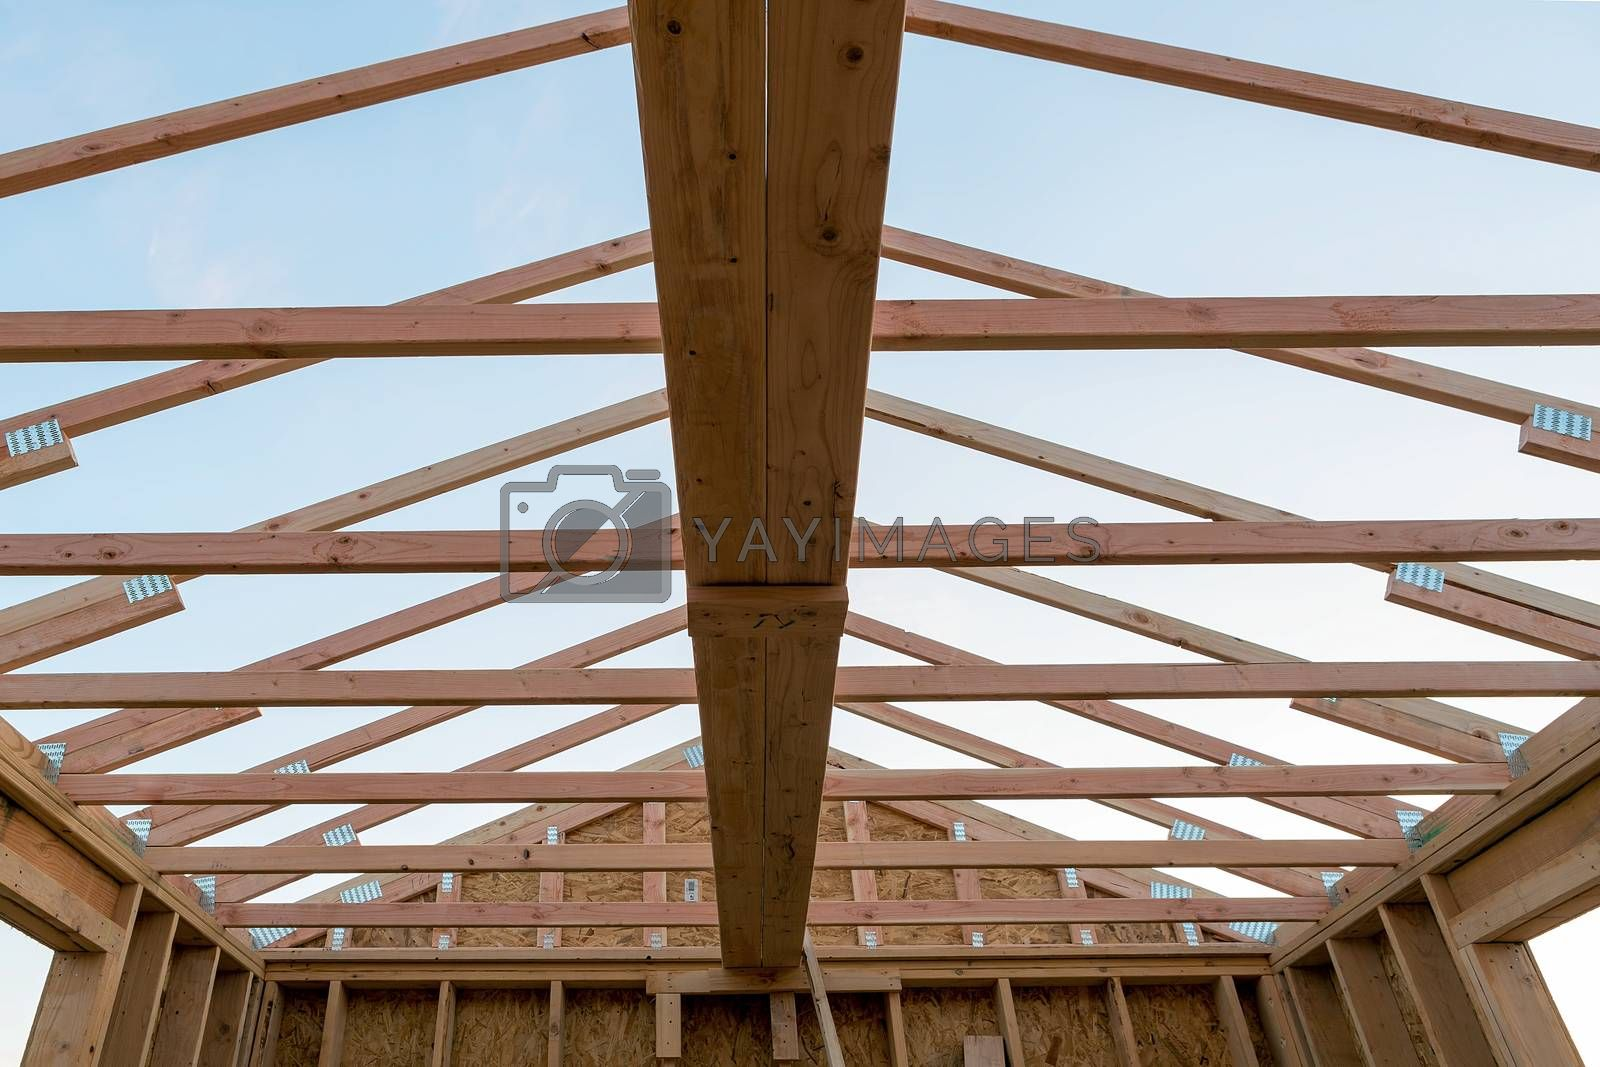 Roof support beams and wood studs framing in new home construction